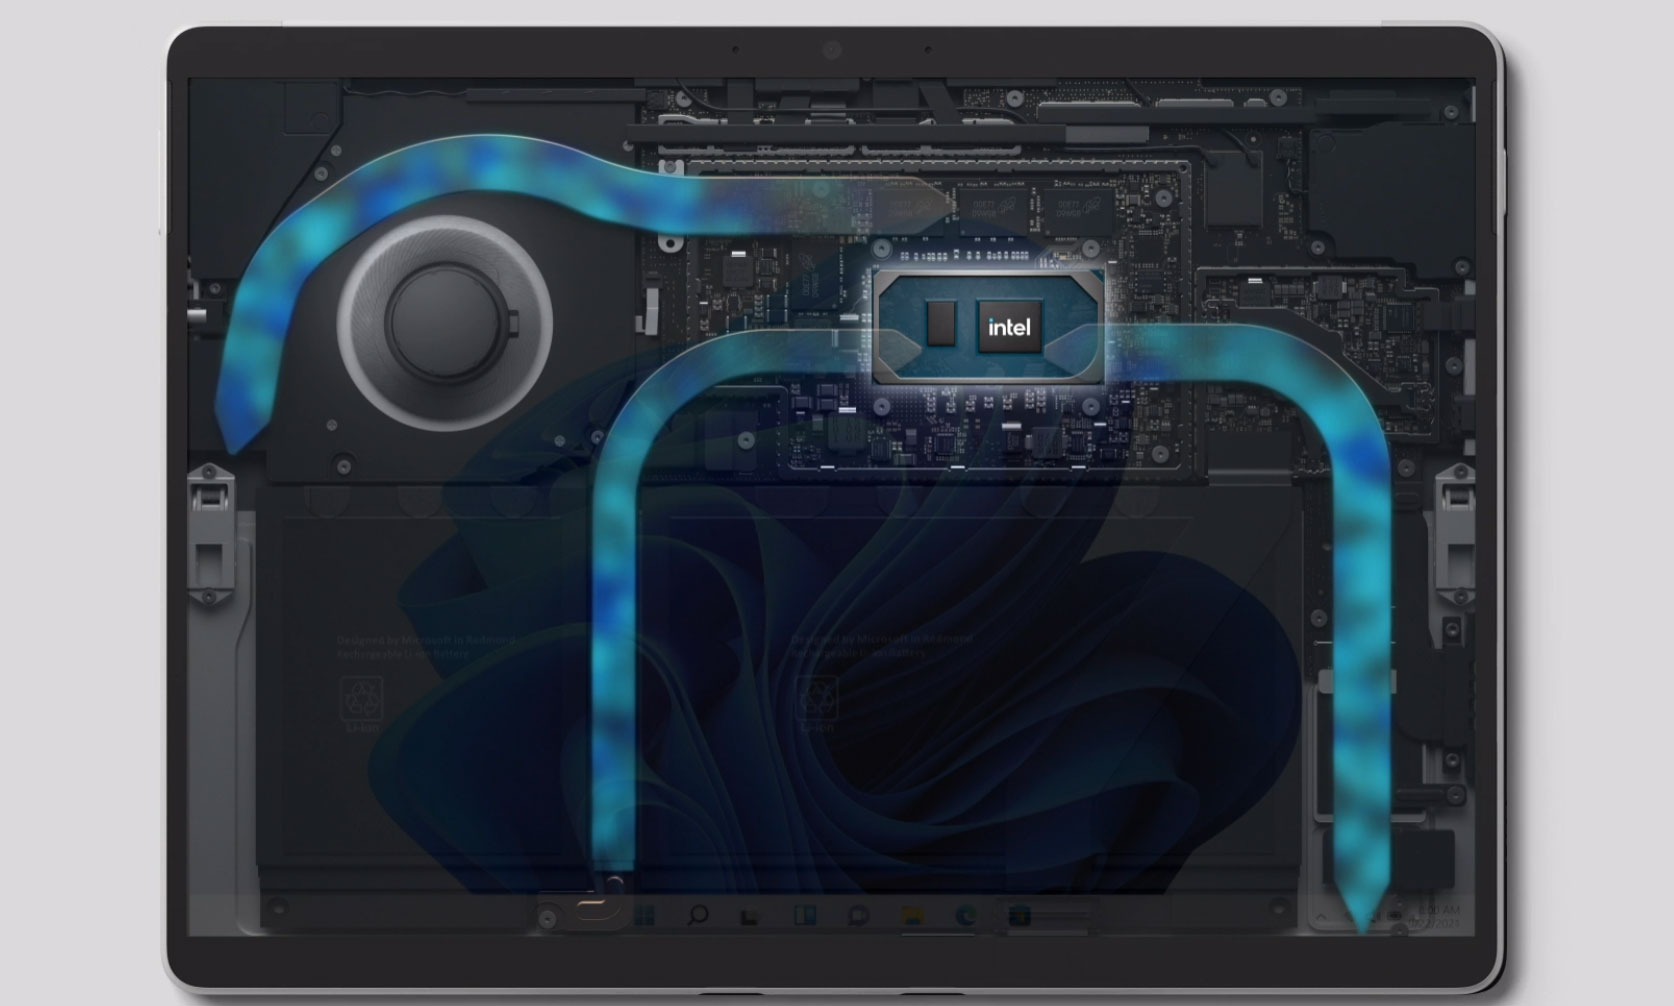 Thermal design of the Surface Pro 8